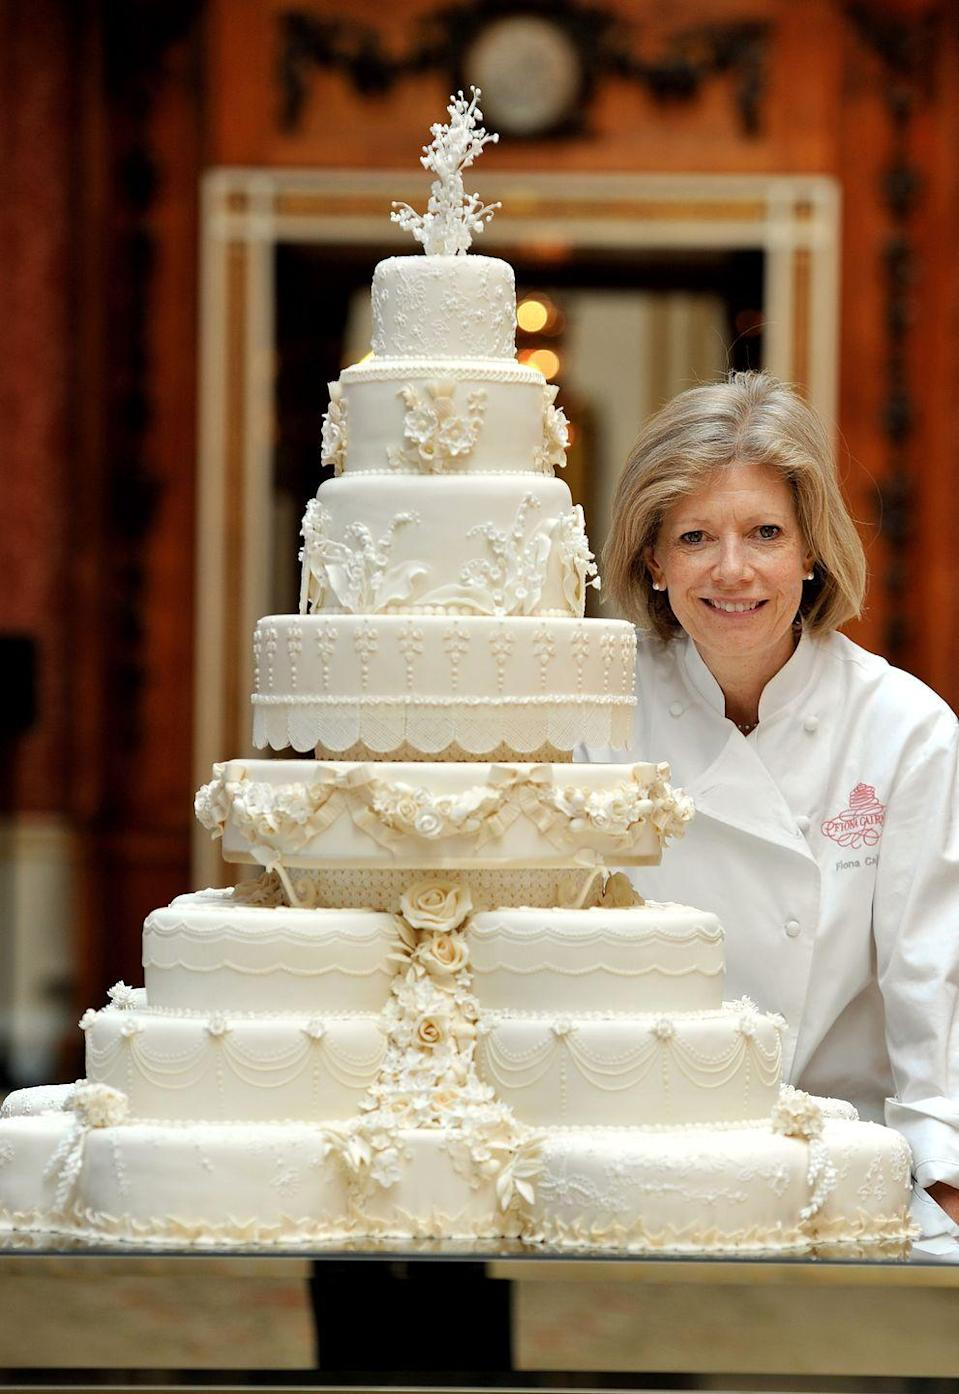 """<p>Pastry chef Fiona Cairns led the charge in creating the eight-layer, 220-pound fruitcake. The <a href=""""https://www.goodhousekeeping.com/food-recipes/a3784/traditional-fruitcake-2202/"""" rel=""""nofollow noopener"""" target=""""_blank"""" data-ylk=""""slk:traditional British flavor"""" class=""""link rapid-noclick-resp"""">traditional British flavor</a> lasts for years (it's often served at later christenings!), but no one ate the final decorated creation that later went on display. Guests actually nibbled at 600 separate slices of fruitcake for breakfast on the morning of the wedding, Cairns told <em><a href=""""https://www.townandcountrymag.com/society/tradition/a19695573/kate-middleton-royal-wedding-cake-baker-fiona-cairns/"""" rel=""""nofollow noopener"""" target=""""_blank"""" data-ylk=""""slk:Town & Country"""" class=""""link rapid-noclick-resp"""">Town & Country</a></em>. </p>"""